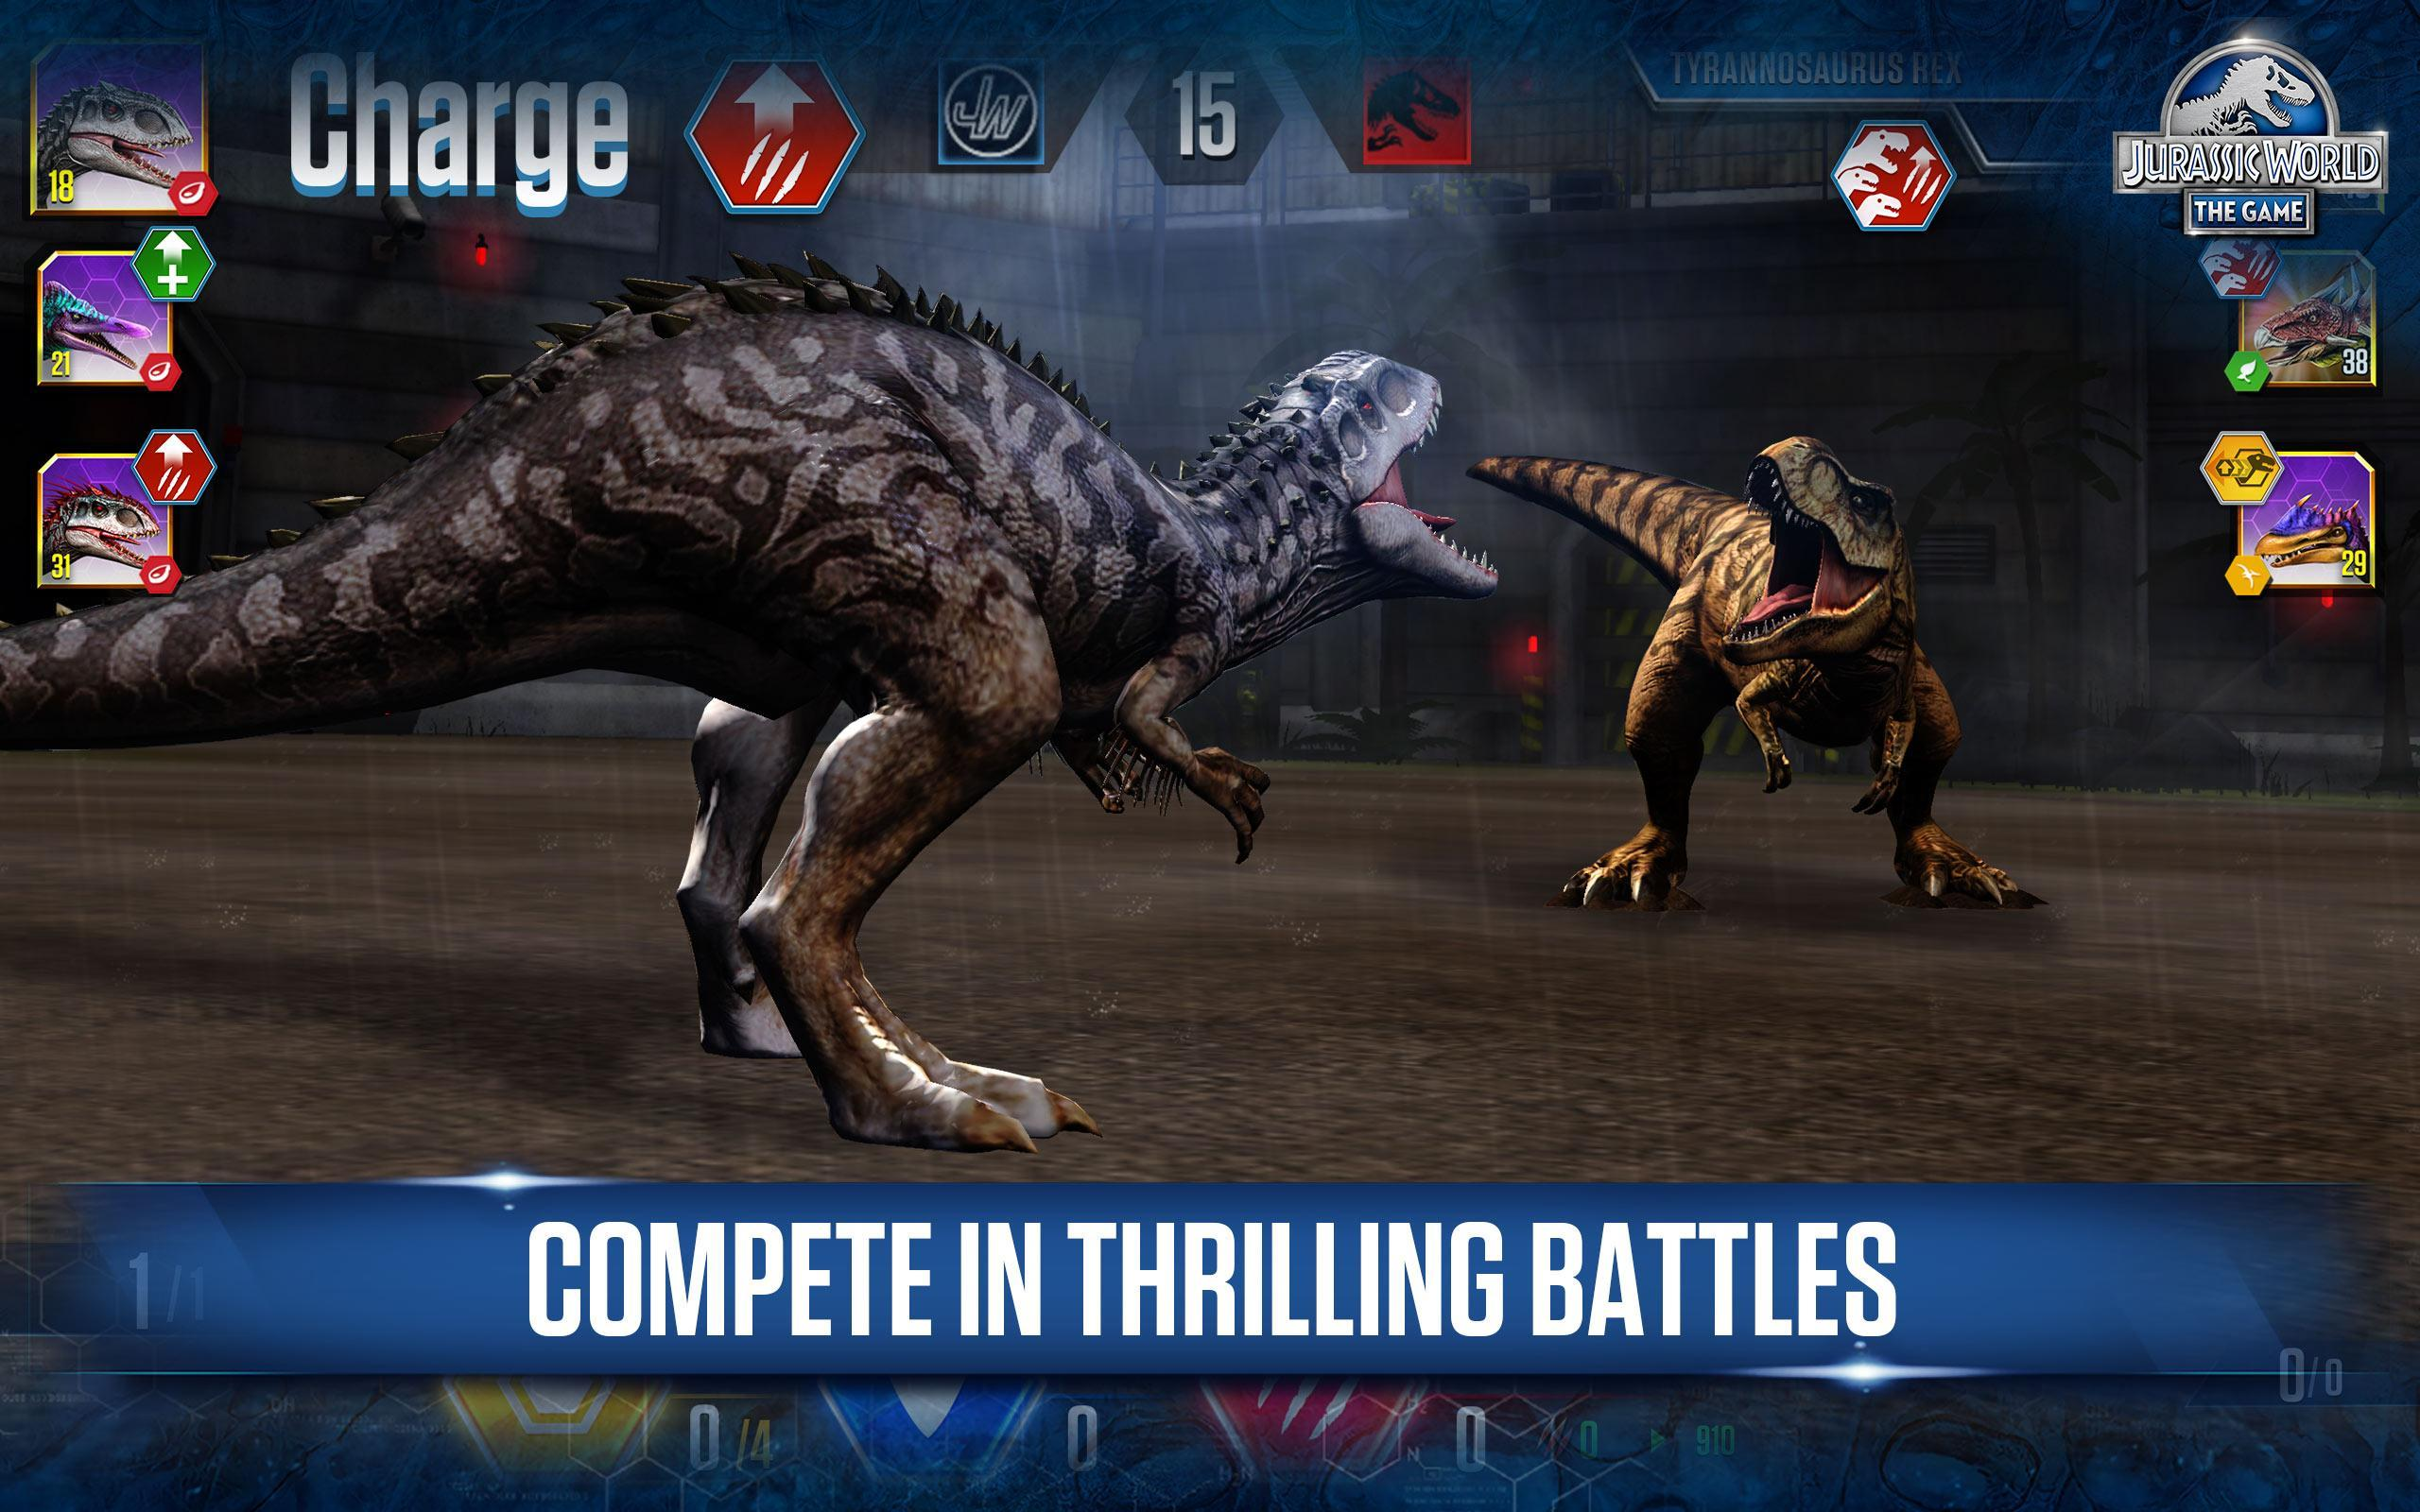 New Update Juracic World Roblox Jurassic World The Game For Android Apk Download